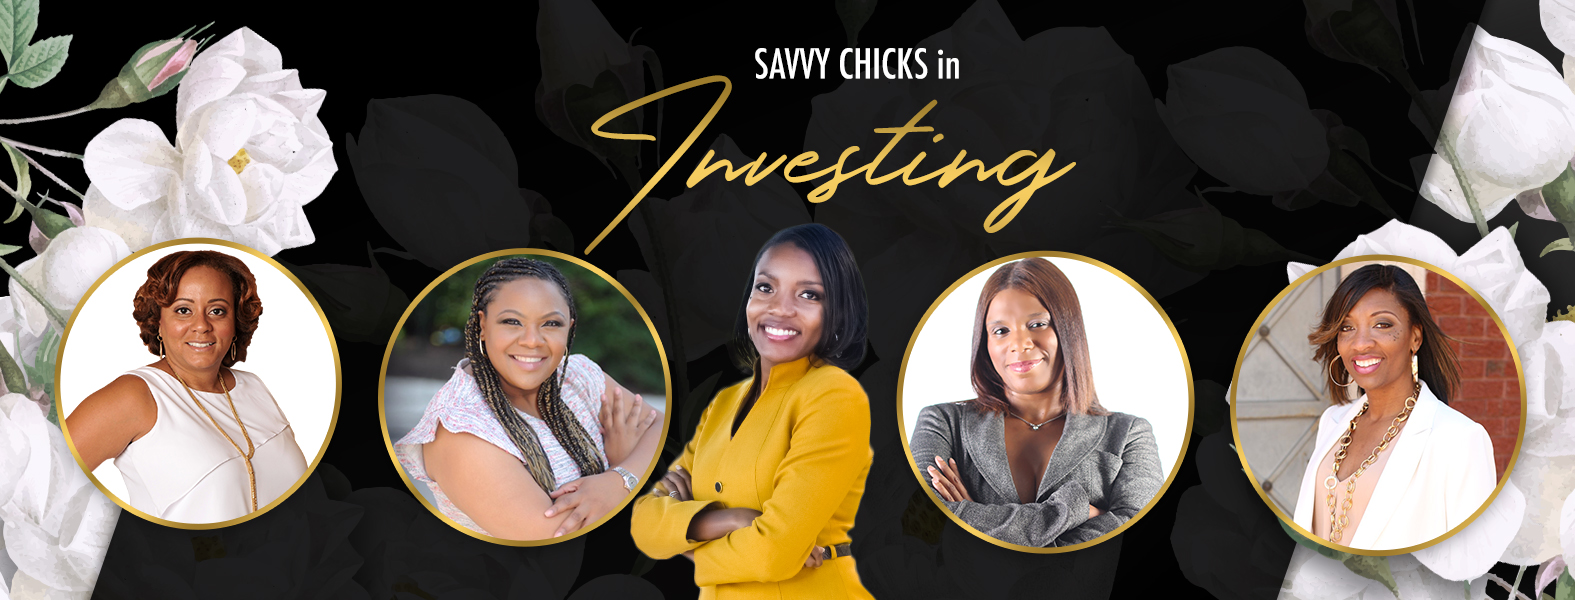 2:30pm - 3:45pm | Savvy Chicks in Real Estate Investing - Tax Liens, Flipping to Seven Figures, How to Finance Your Deals, How to Protect your investments, Working with Investors as a Realtor, How to legally start an Airbnb, Start Your own Property Management Company and your own Real Estate Construction Company.Q & AGuest Panelists:Alexis Hart McDowell, Esq. | Law Office of Alexis Hart McDowellCourtney Richardson | The Ivy InvestorChavonna Coles | Dream Design & DevelopmentSherkica Miller-McIntyre | Carod Properties & Divas Doing Real EstateModerator:Rashauna Scott | Flippin' in Heels